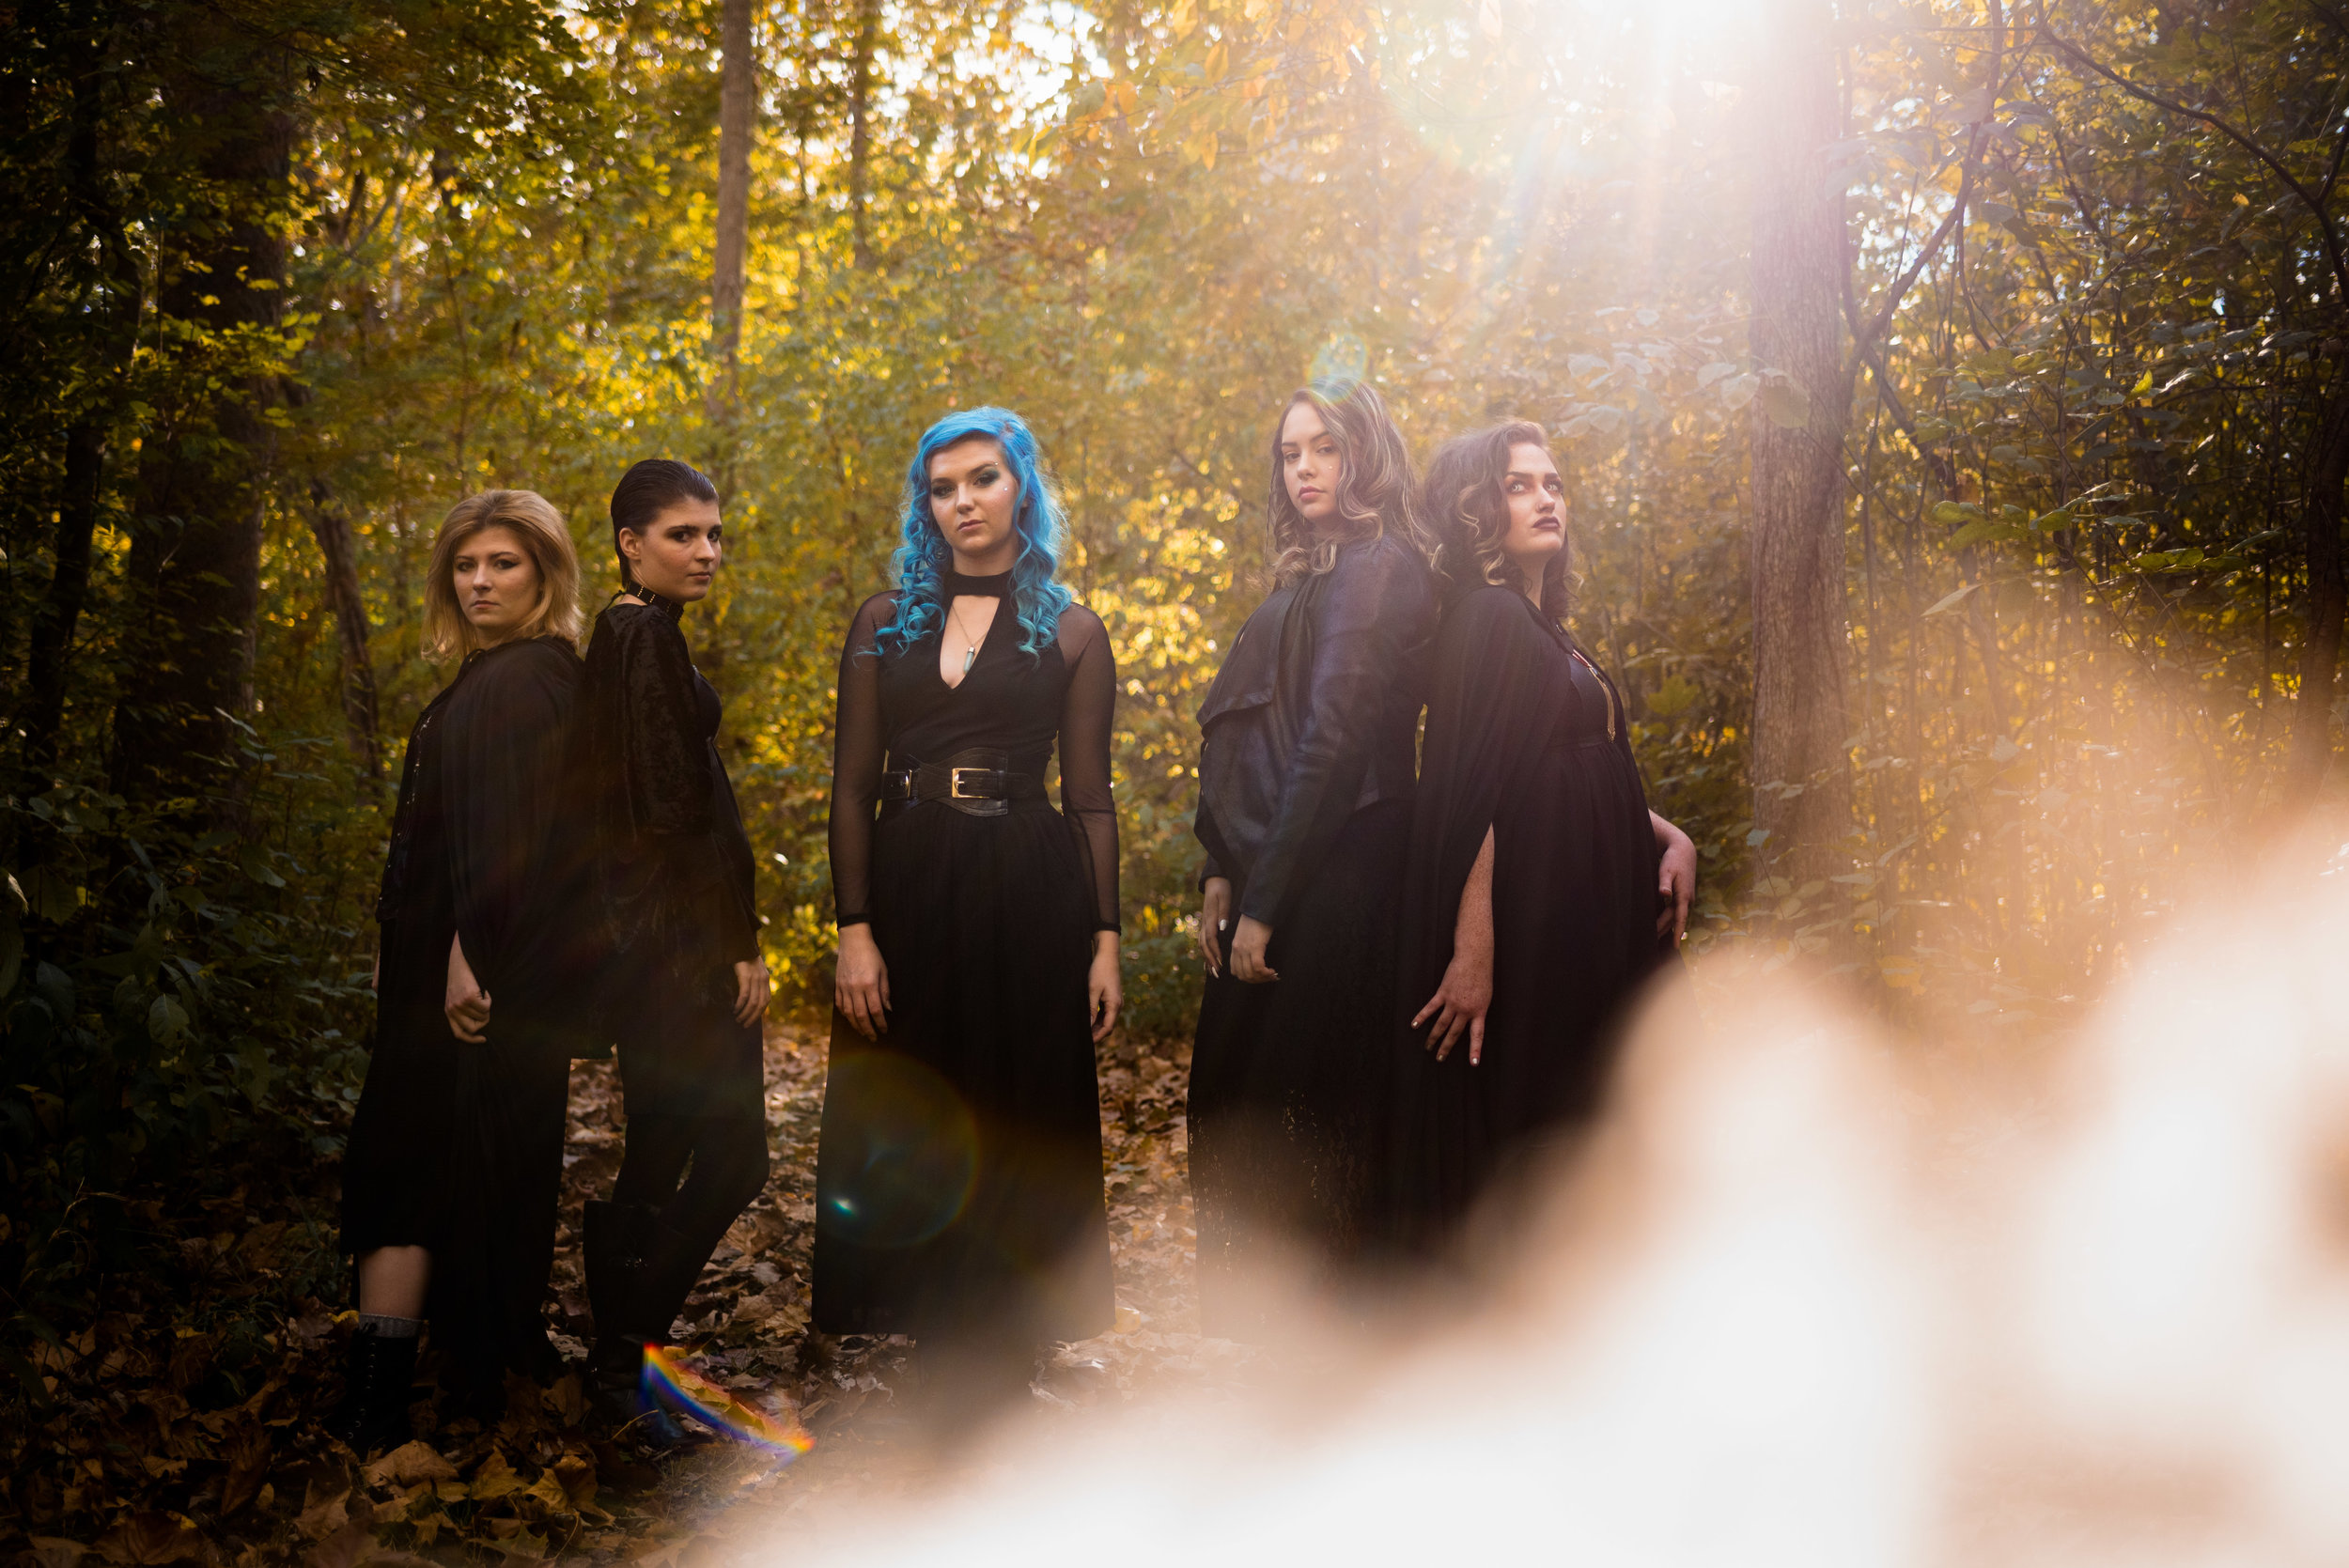 Halloween Themed Photo Shoot Five Witches Rebecca Trumbull Photography